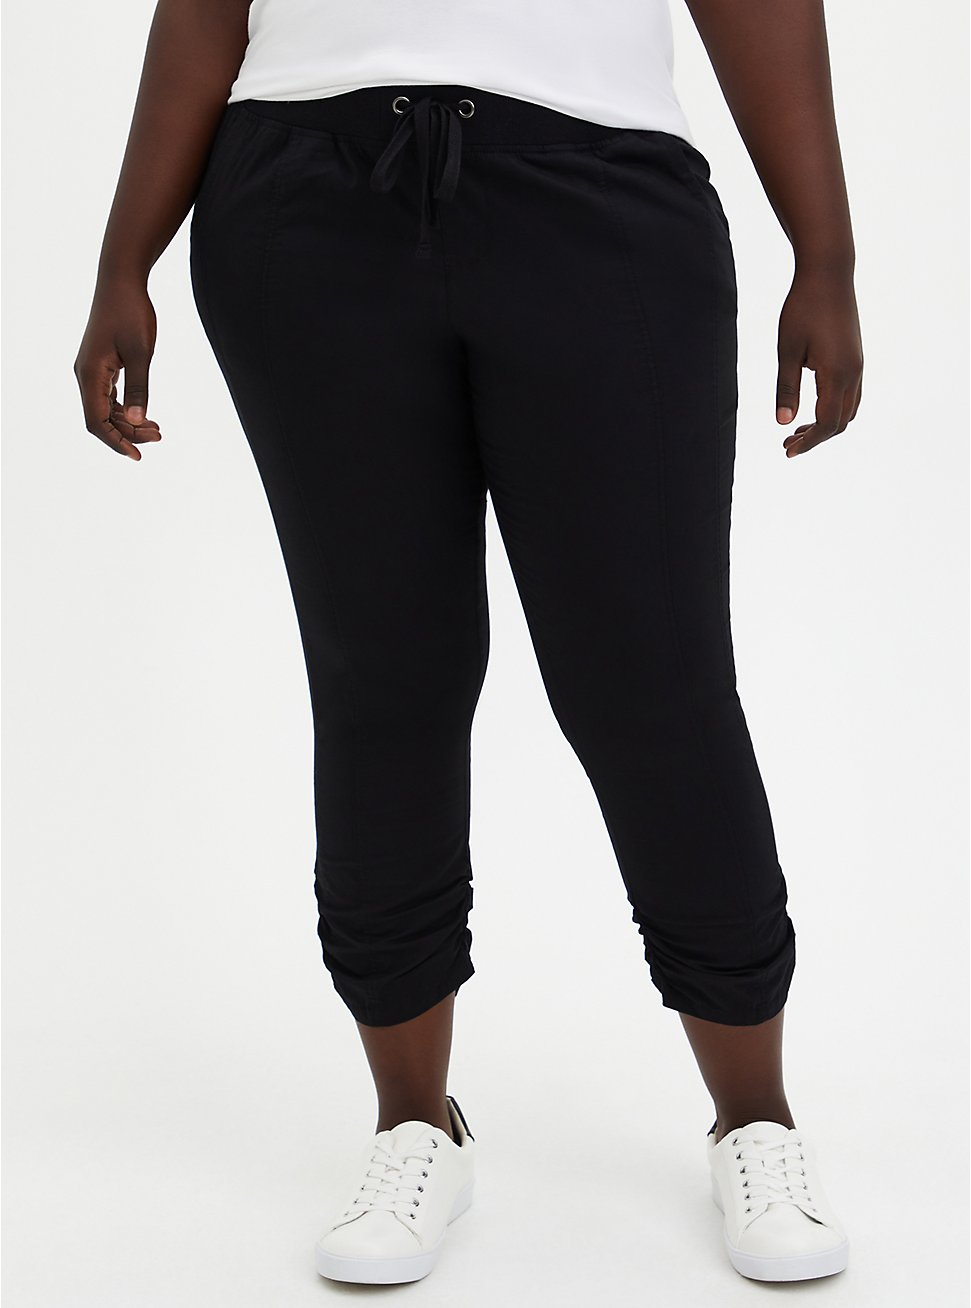 Black Poplin Crop Pant, DEEP BLACK, hi-res